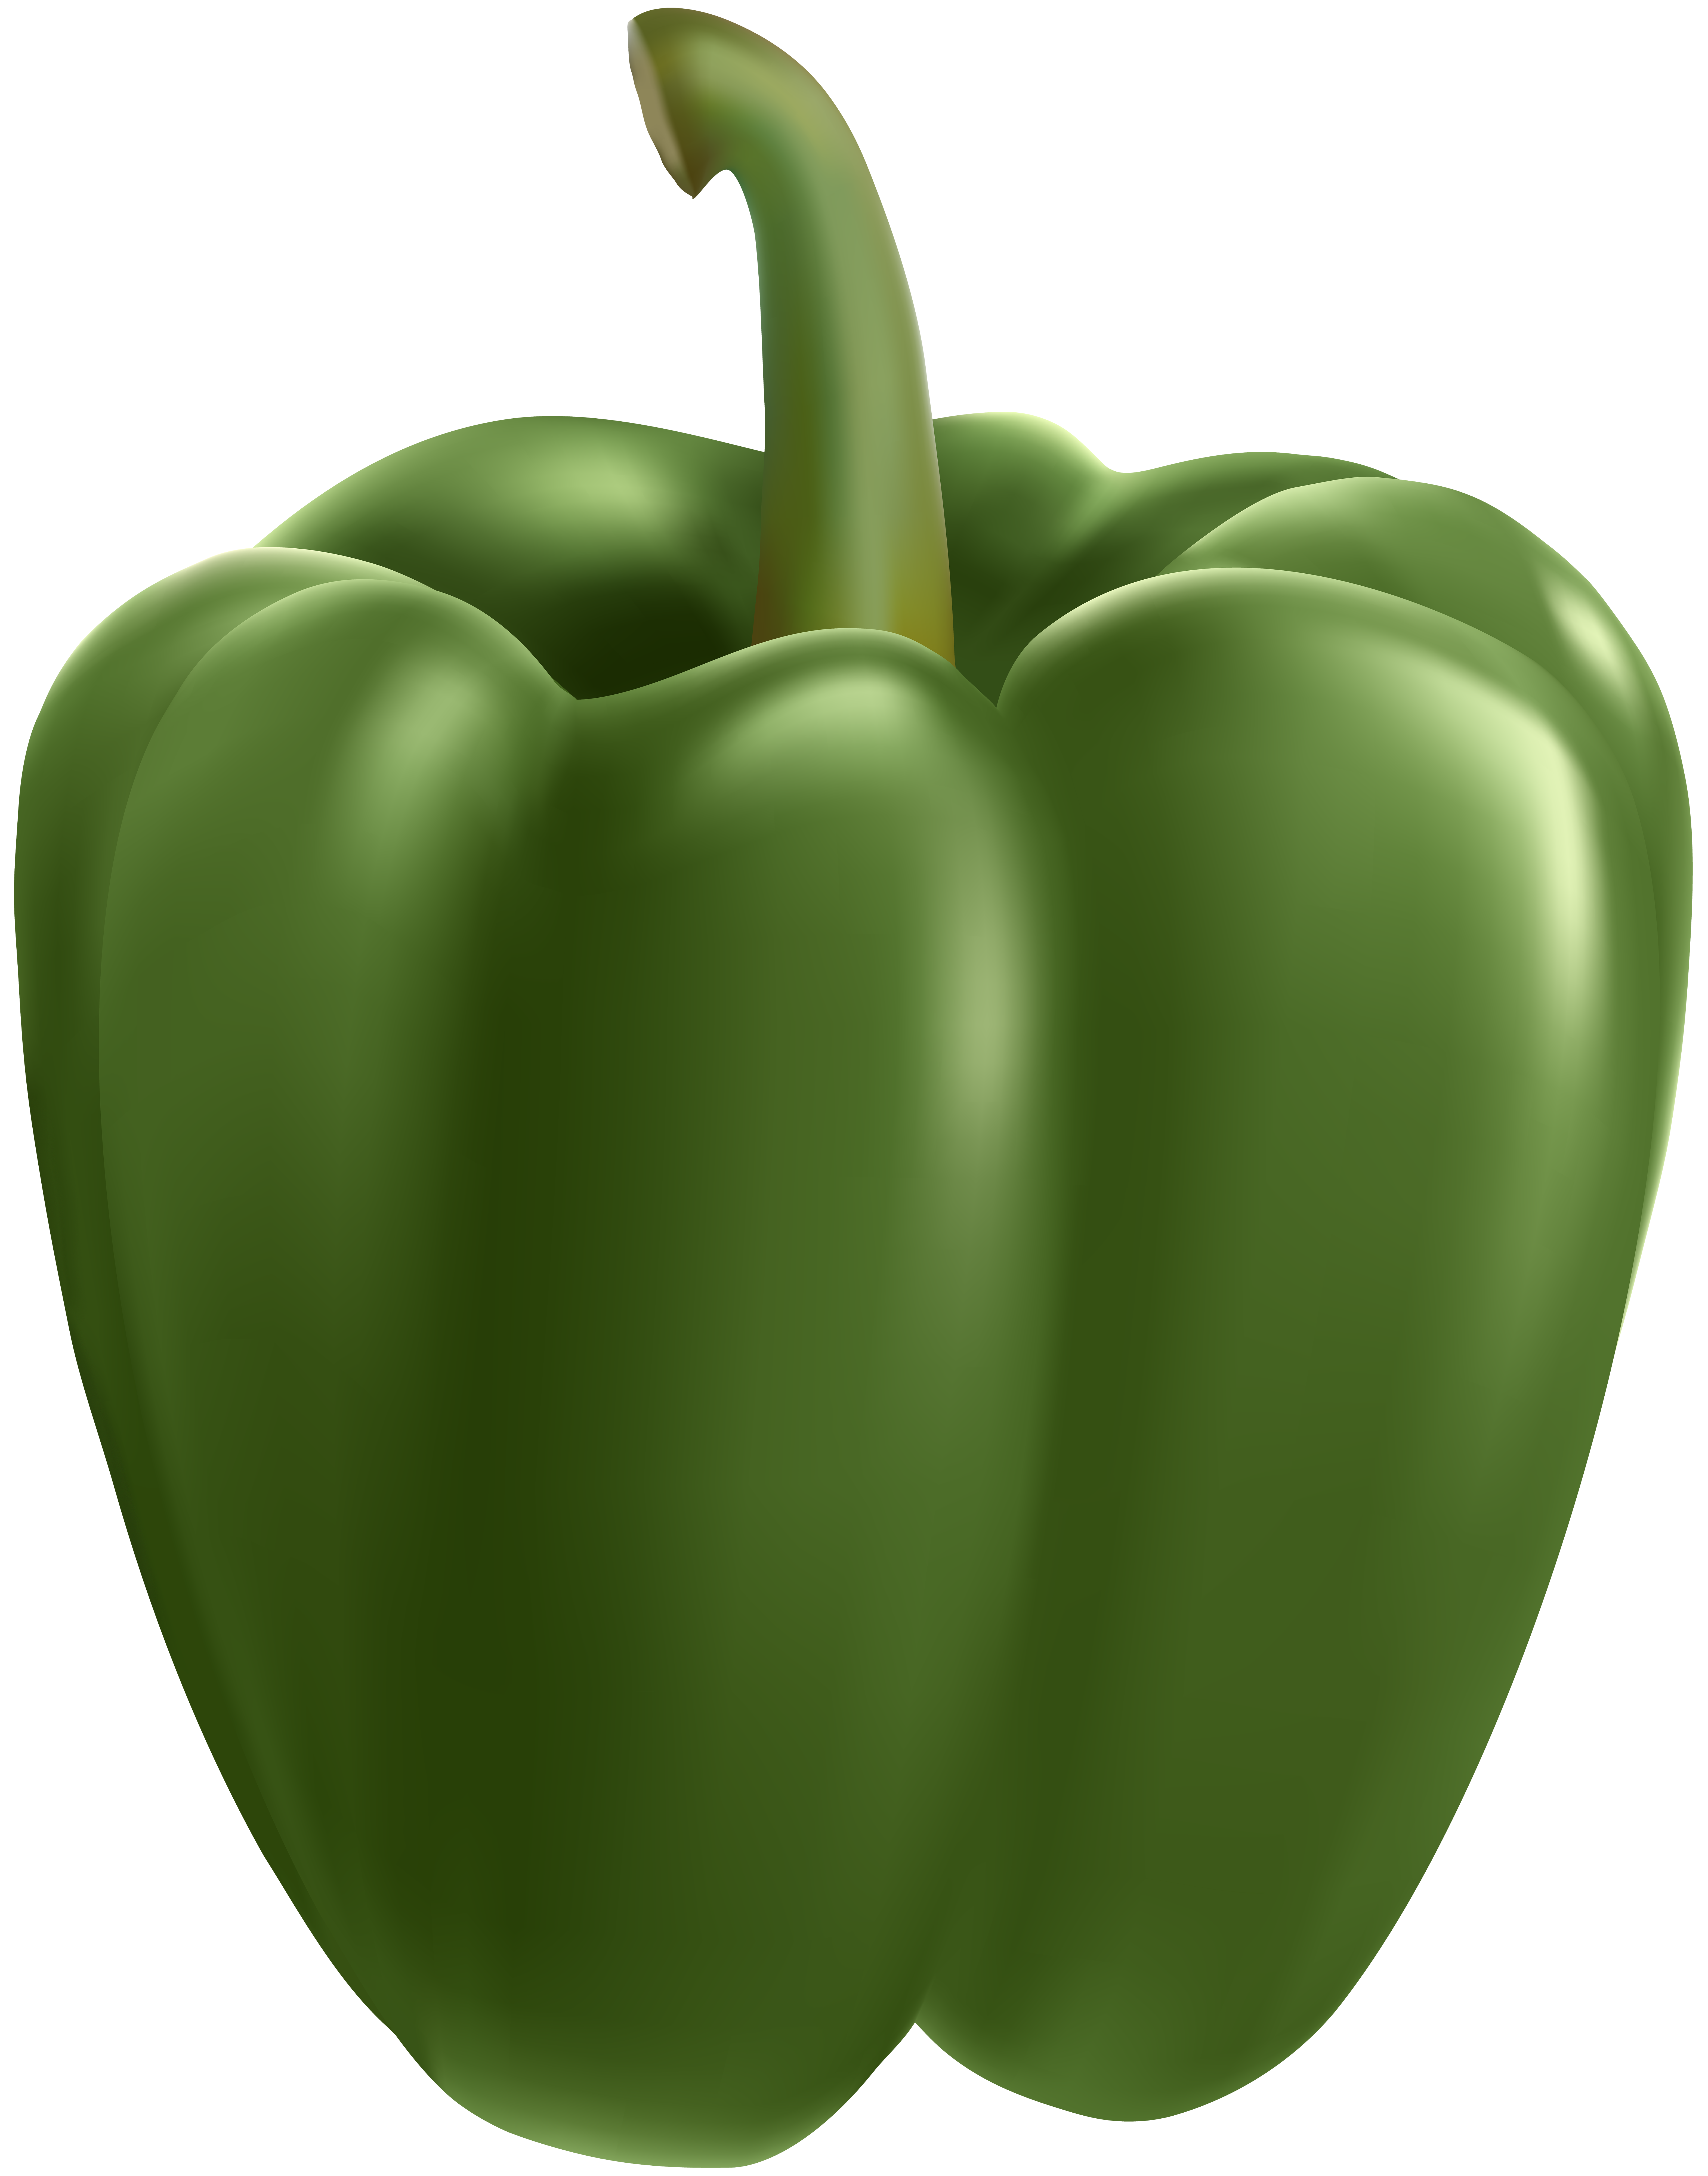 Clipart bell peppers svg freeuse download Green Bell Pepper Transparent Clip Art Image | Gallery Yopriceville ... svg freeuse download